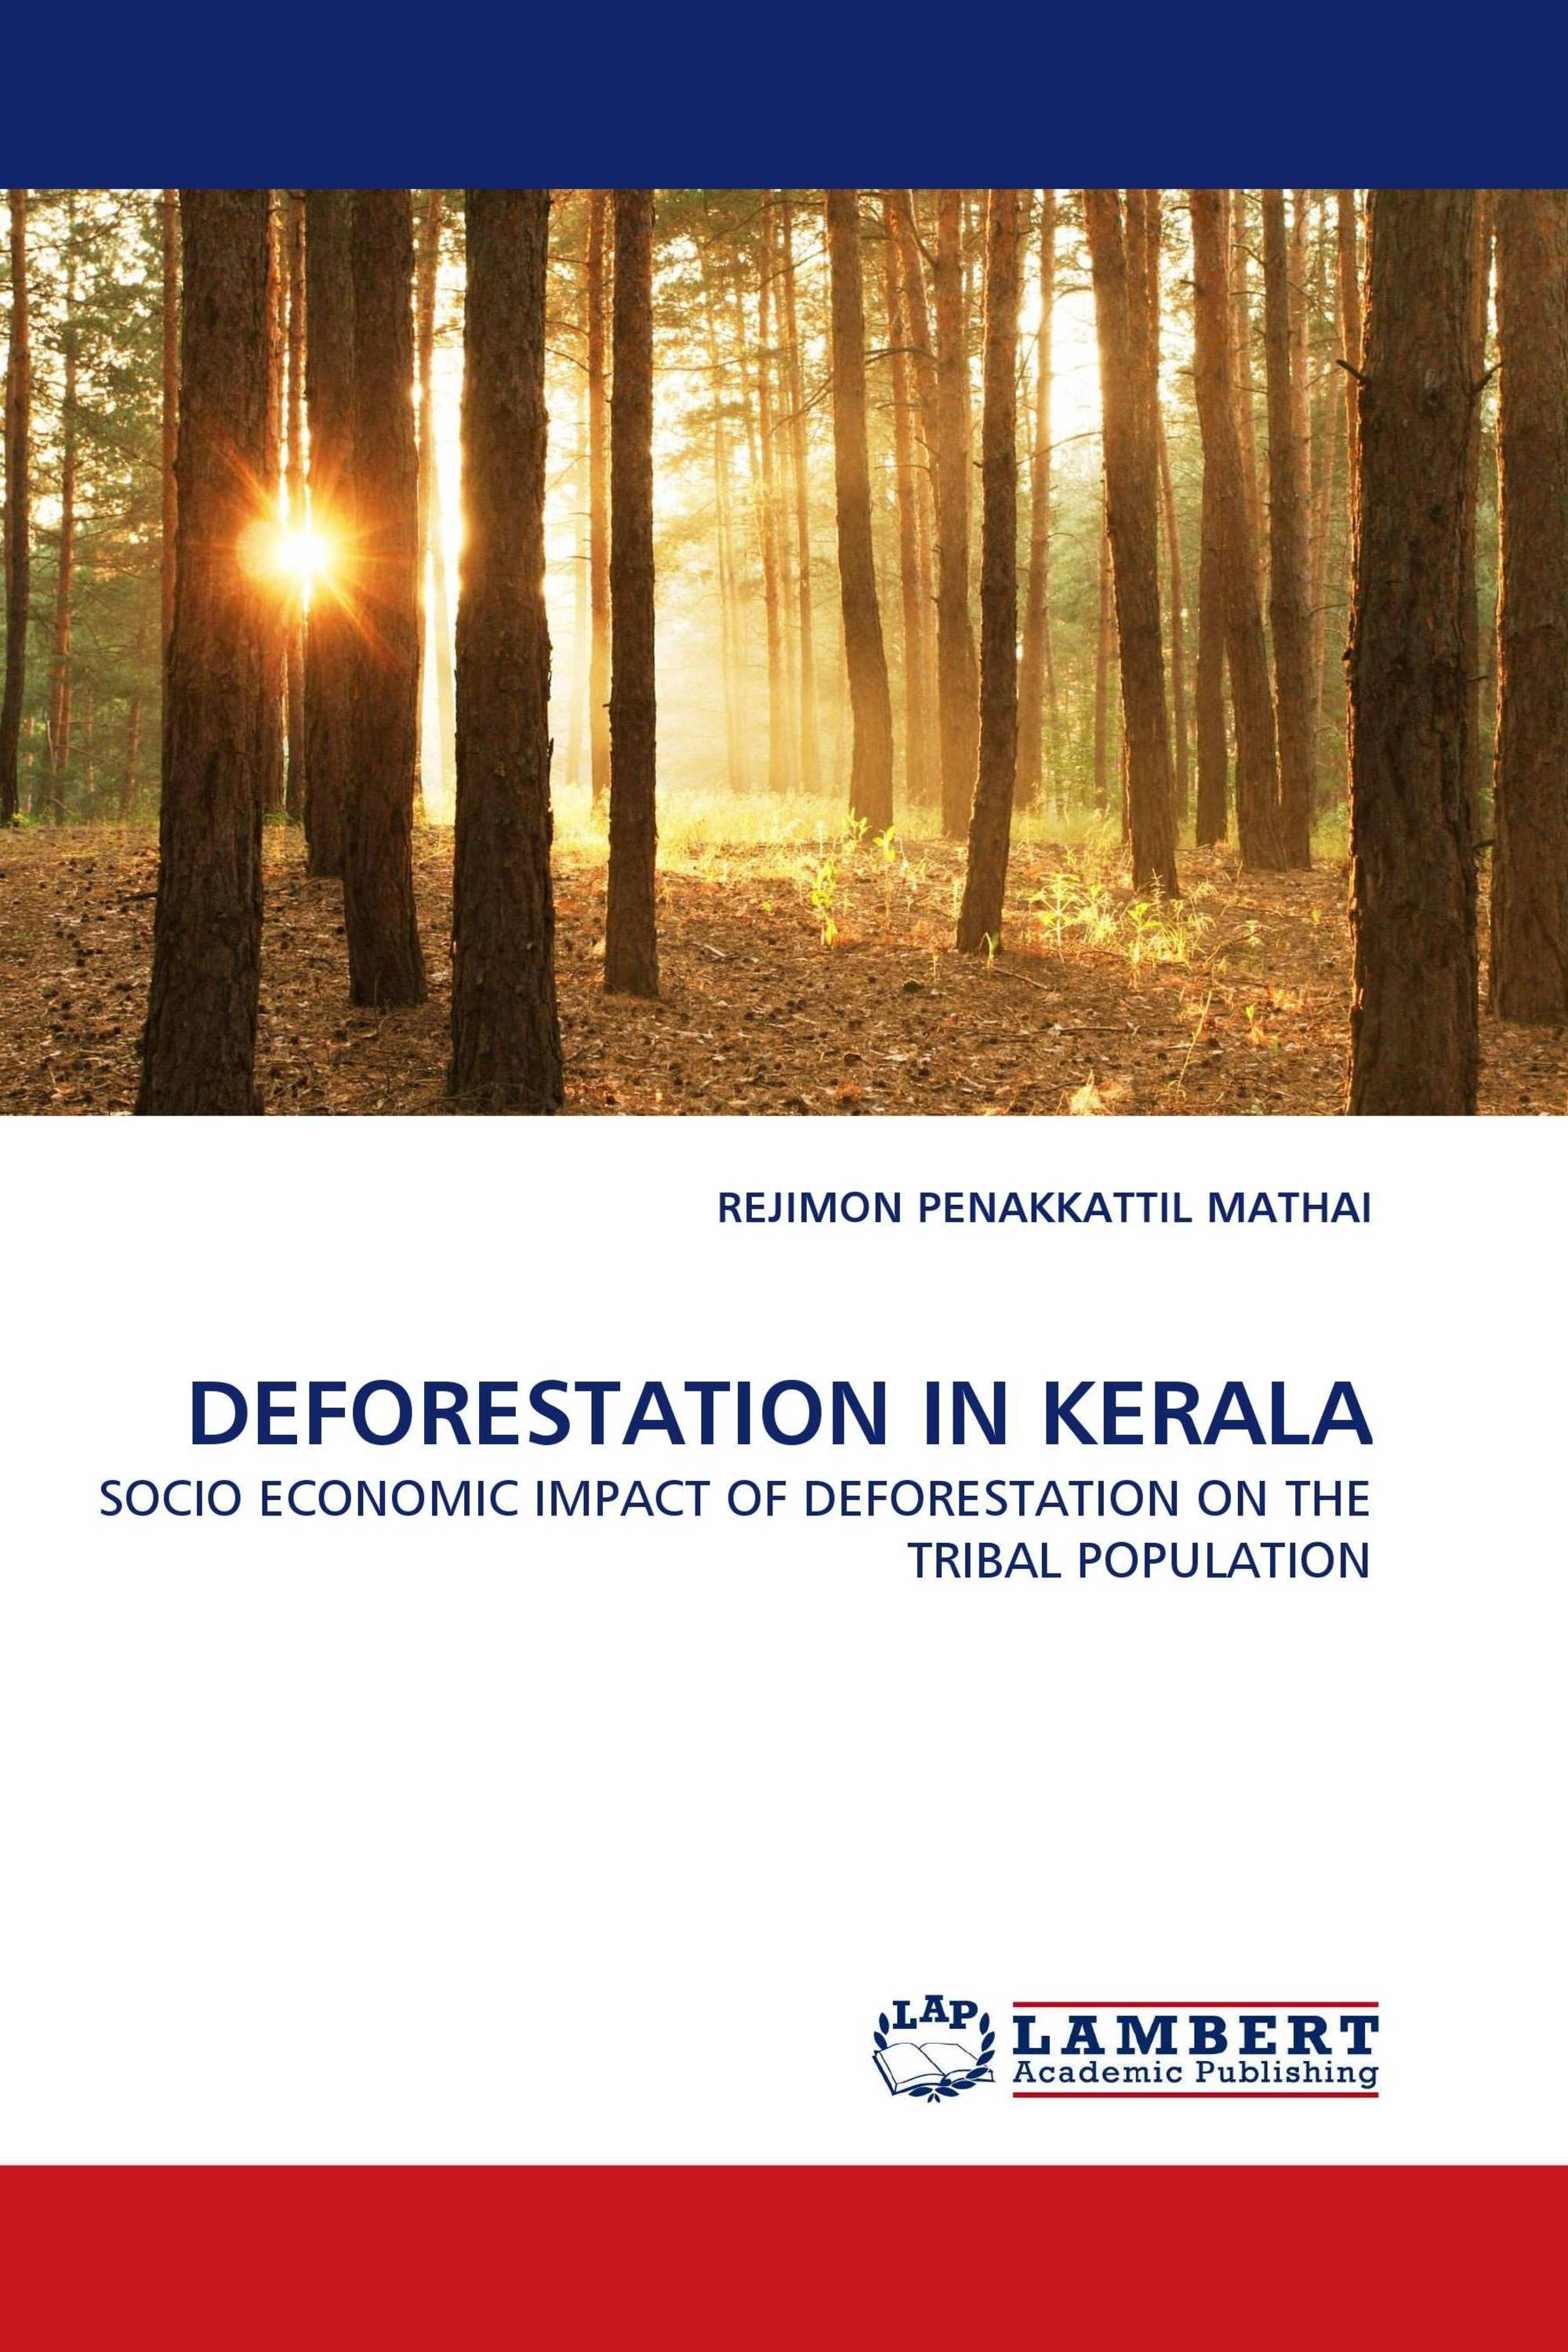 deforestation in kerala Methane and carbon dioxide are greenhouse gases they absorb heat energy and prevent it escaping into space this keeps the earth warmer than it would be without.